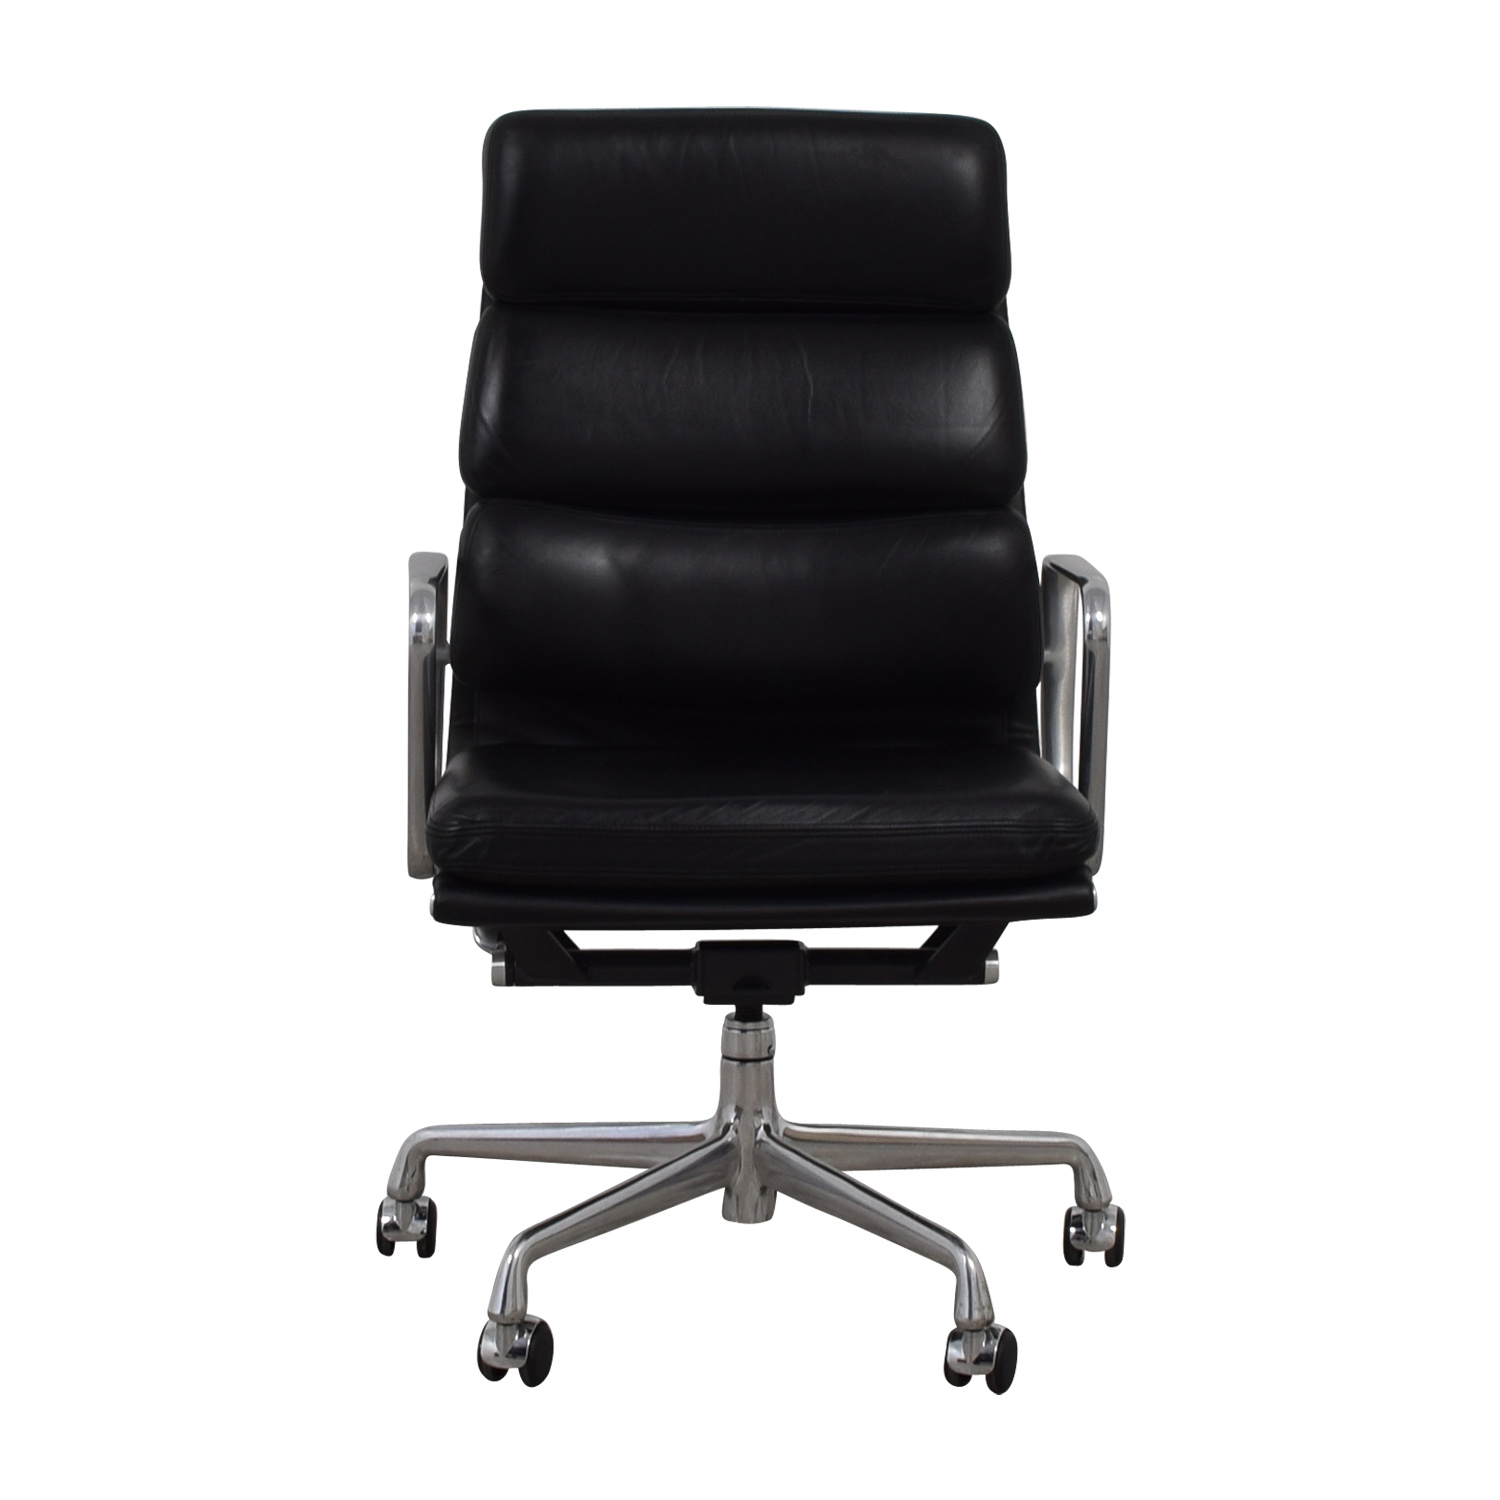 buy  Eames Softpad Executive Black Leather Chair online